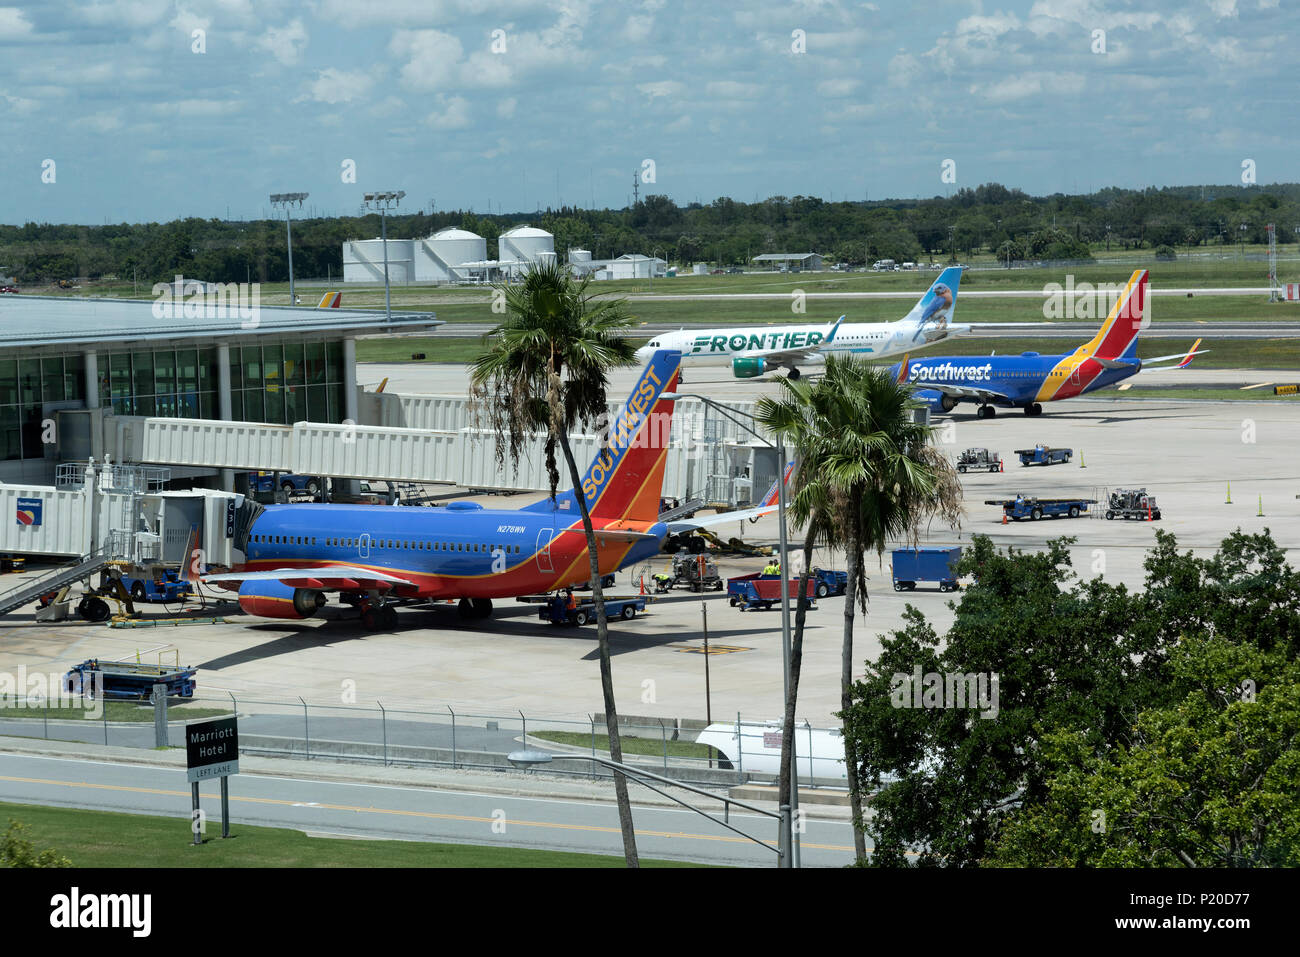 L'Aéroport International de Tampa, Floride, USA. En 2018. Aperçu de l'aérogare sud-ouest et de l'avion. Photo Stock